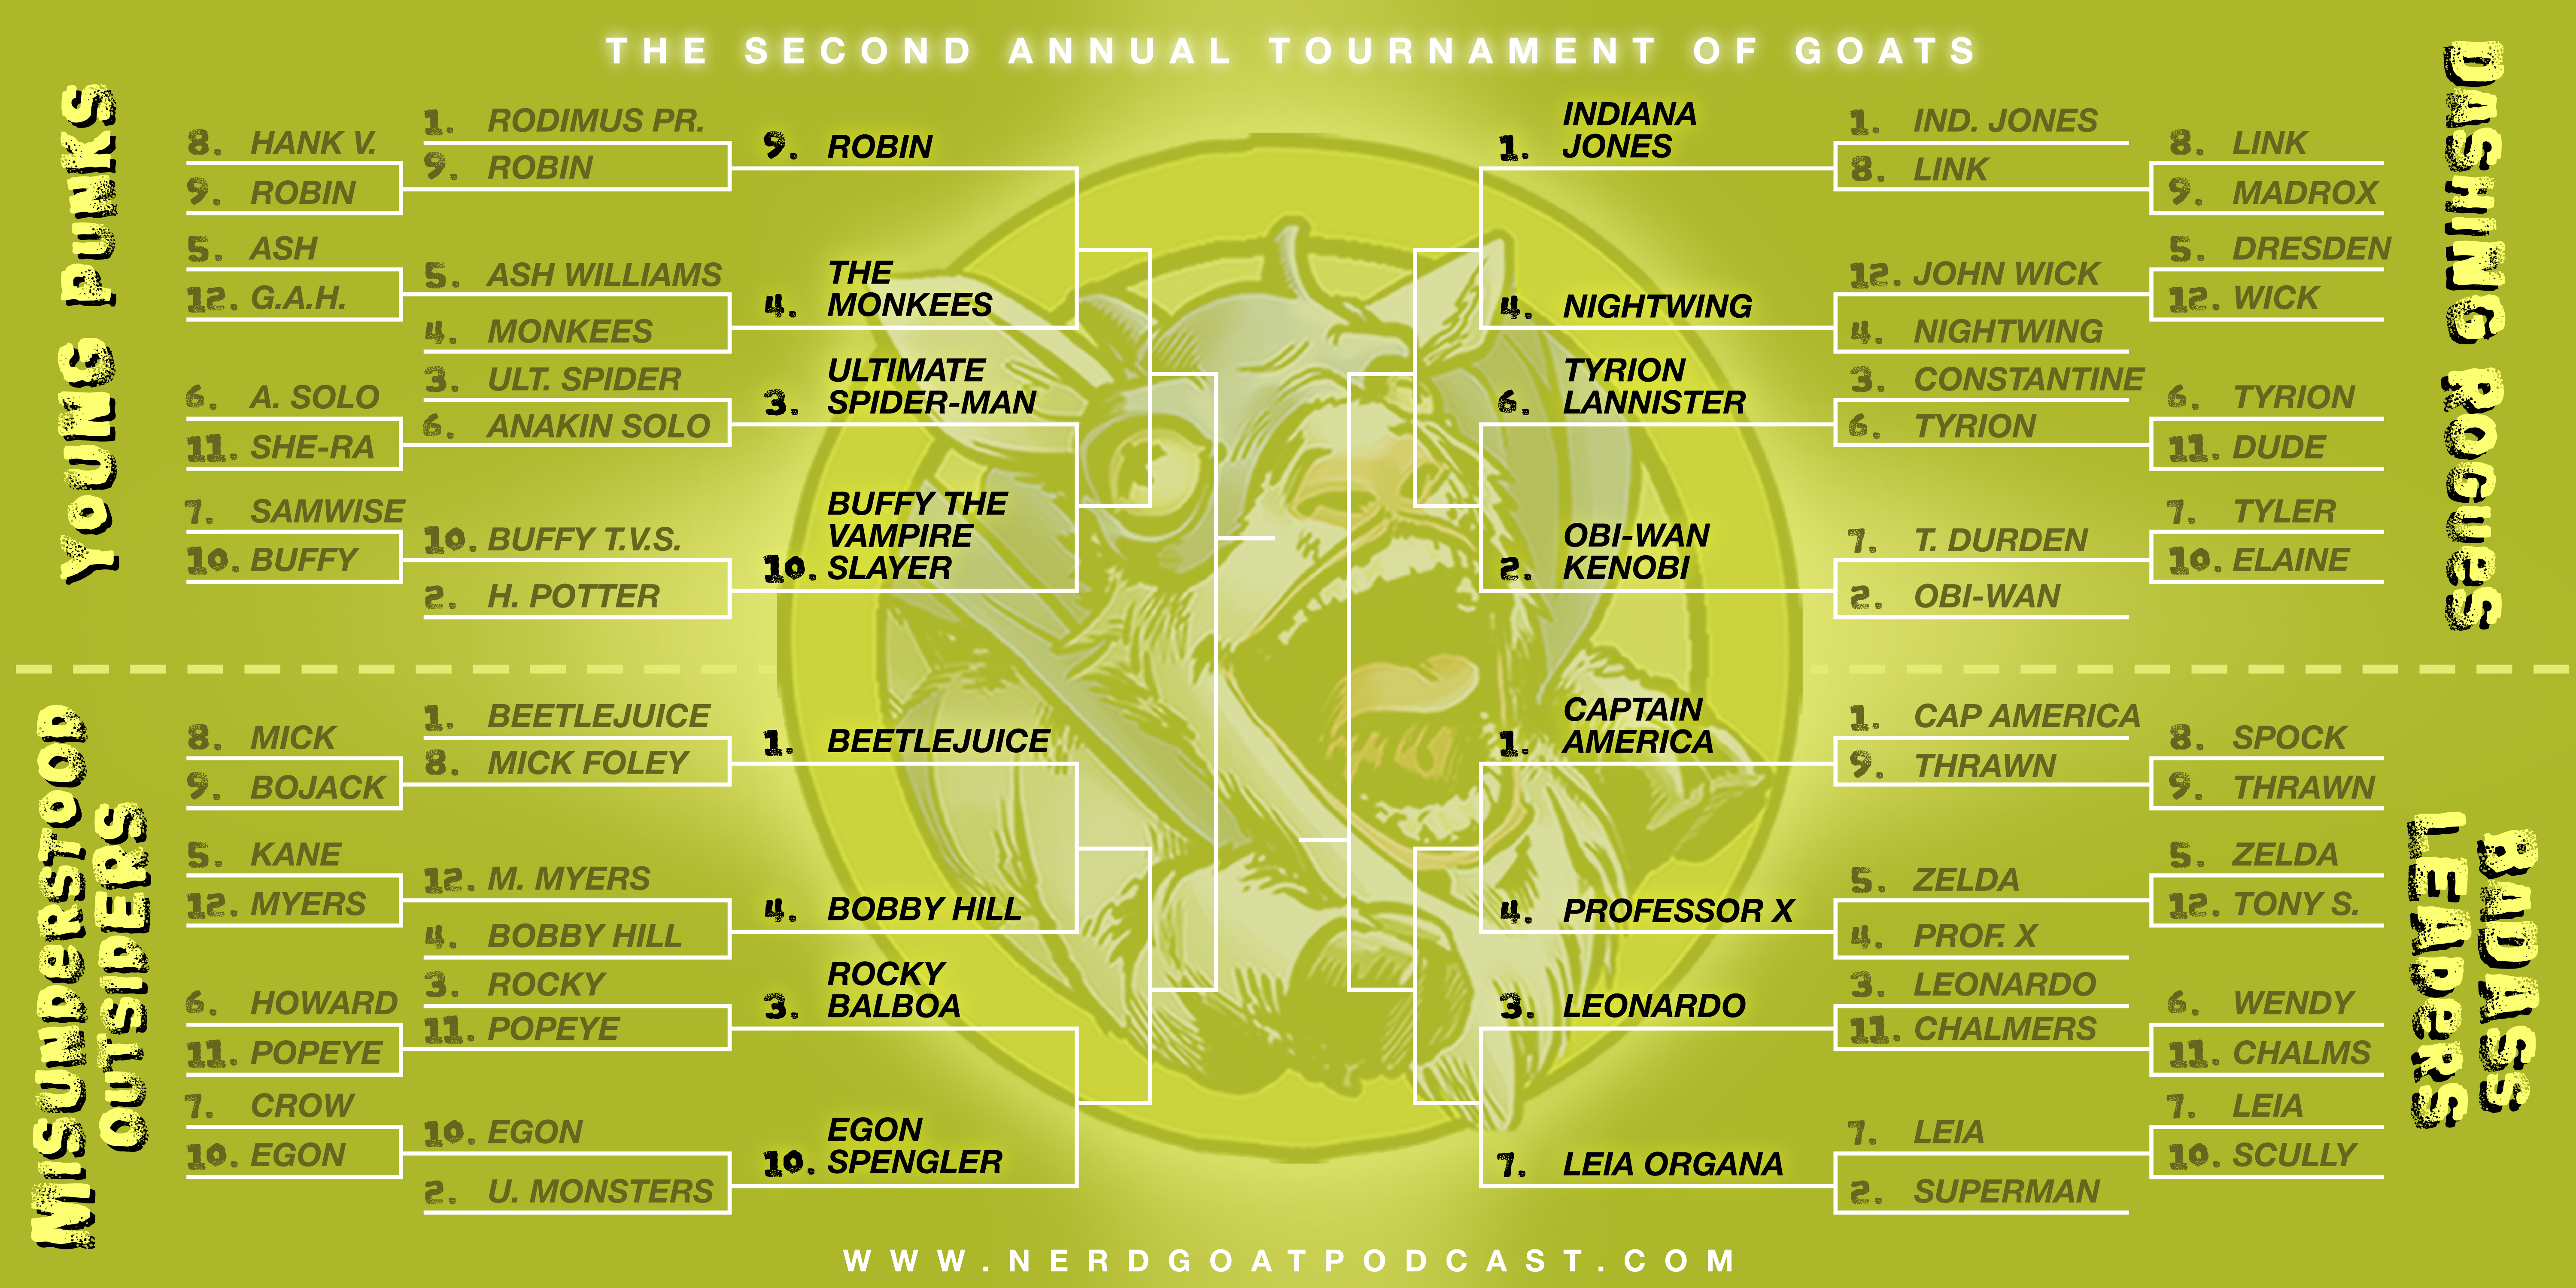 Tournament of GOATS SWEET 16